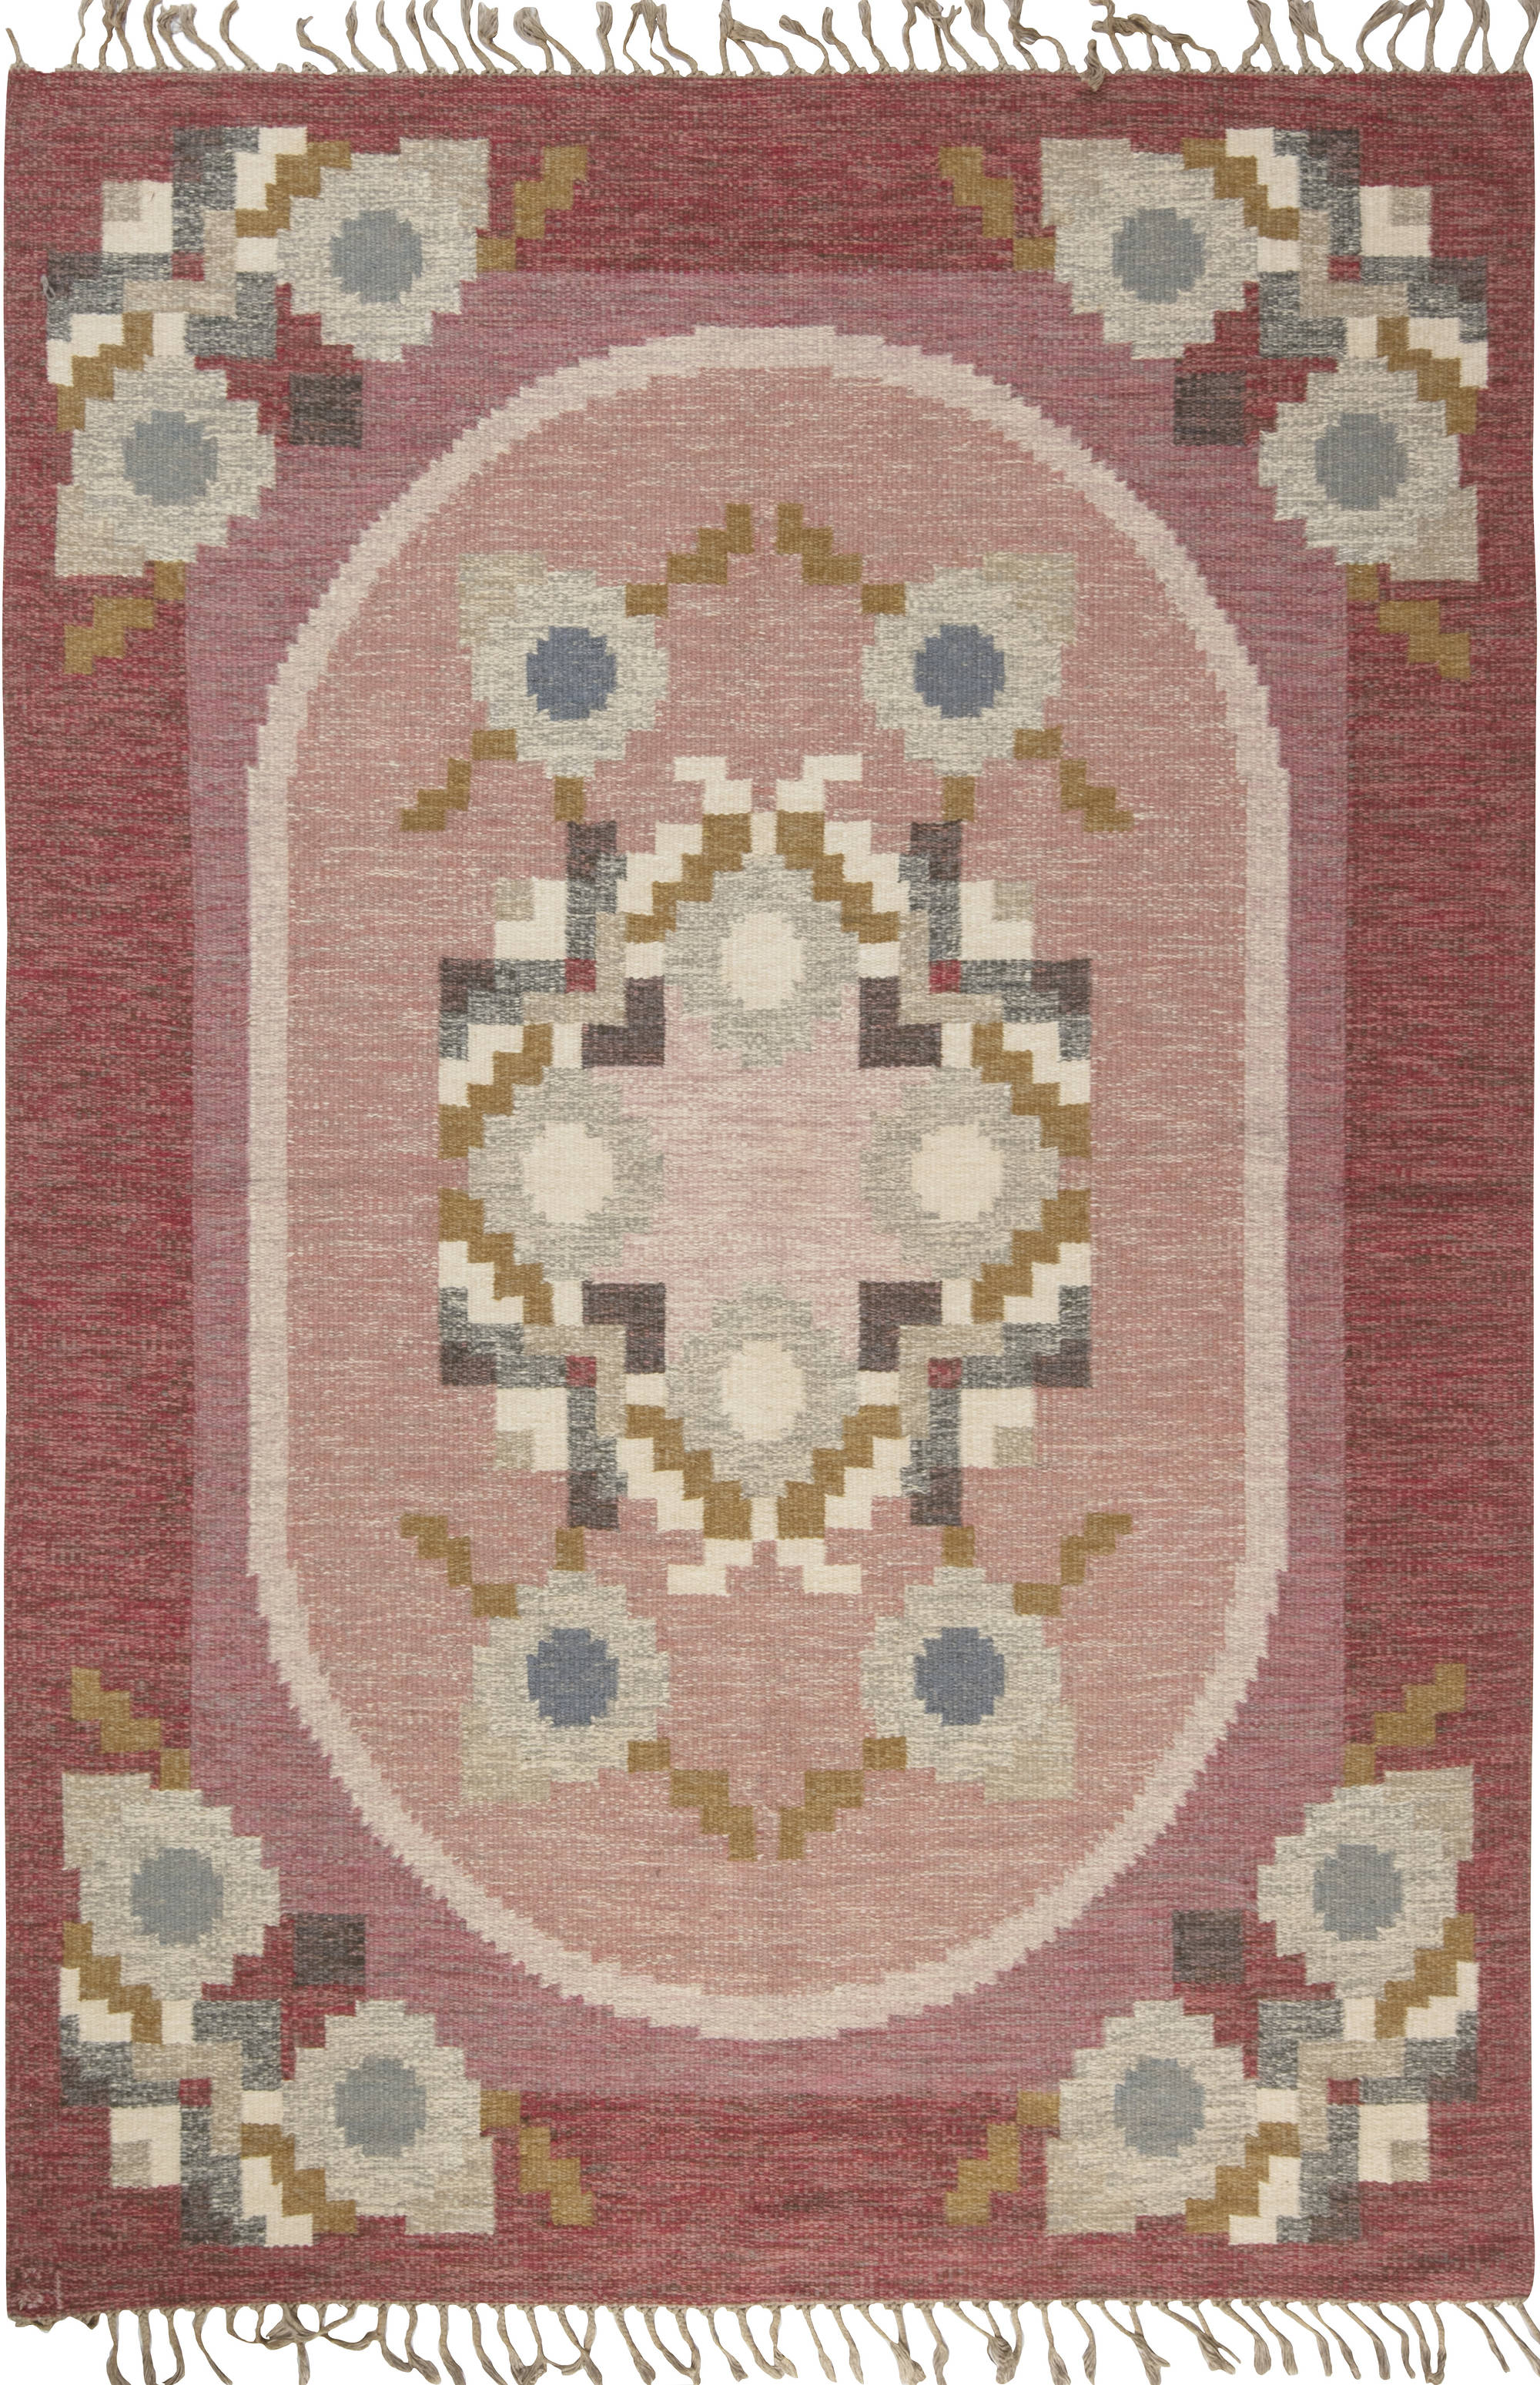 Vintage Swedish flat weave rug signed by Ingegerd Silow BB6557